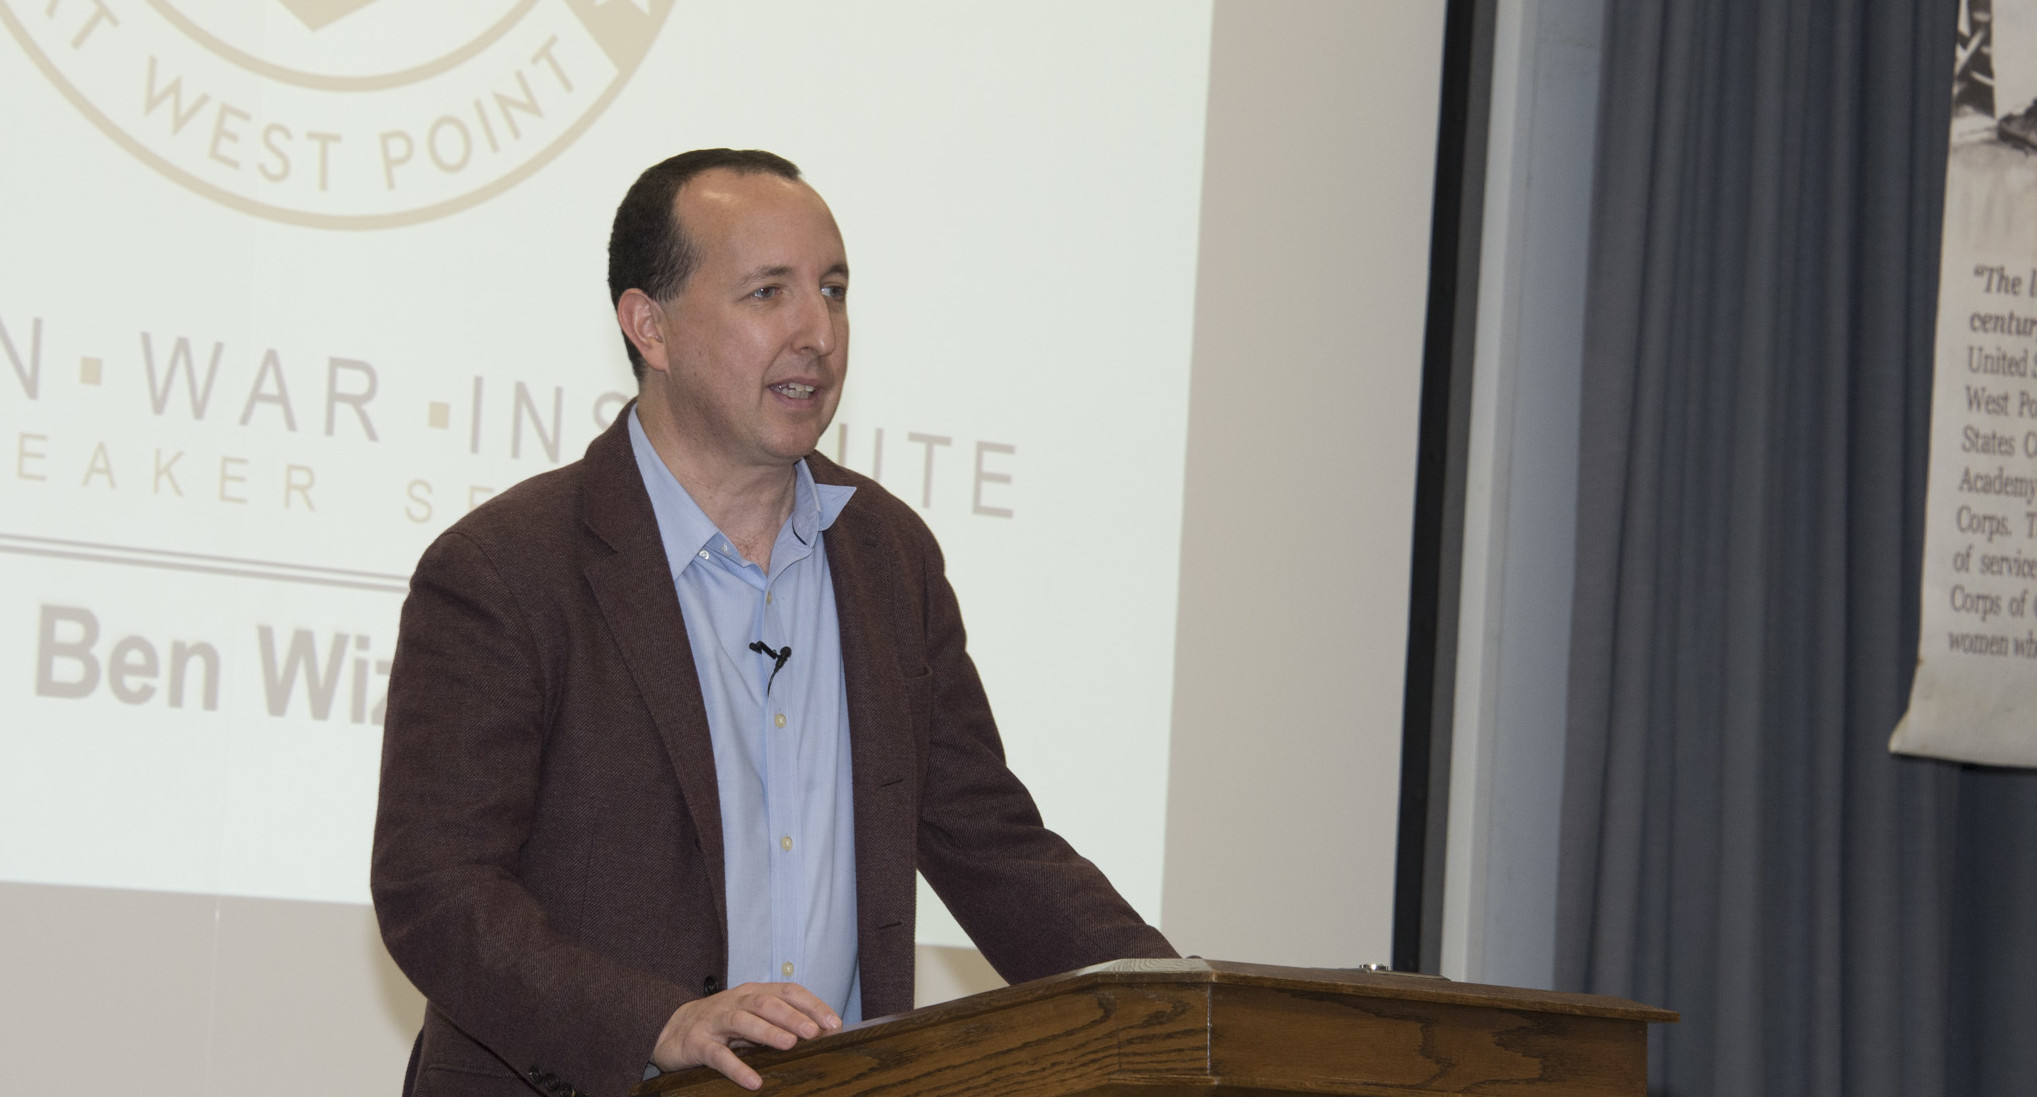 MWI Speaker Series – Ben Wizner: Snowden, Secrecy, and the Case for Unauthorized Leaks